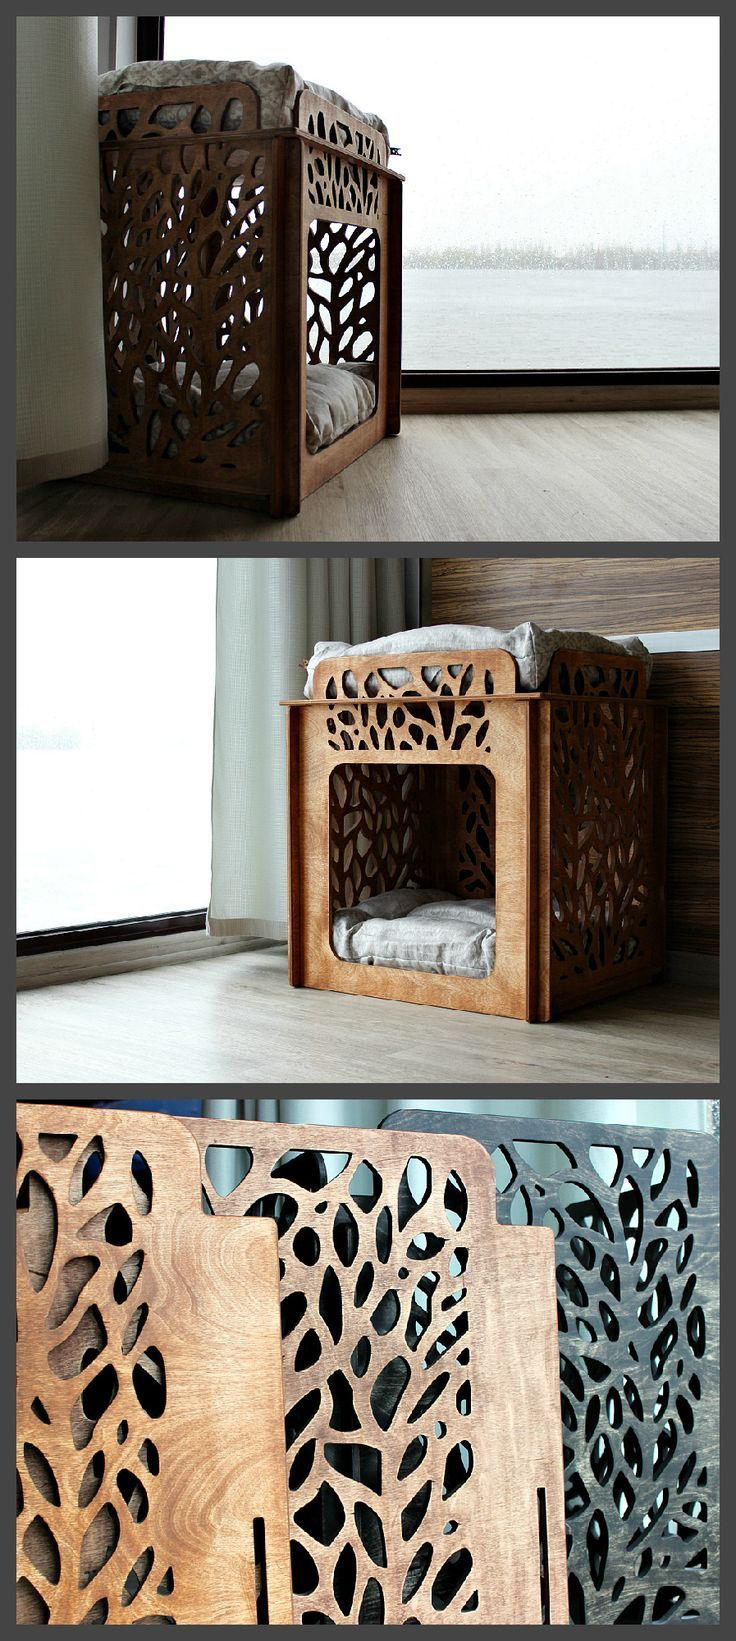 Cat house – For two cats. Cat bed, luxury cat bed, cat hammock, pet bed, pet hammock bed, dog hammock bed, lttle dog bed, stylish cat bed